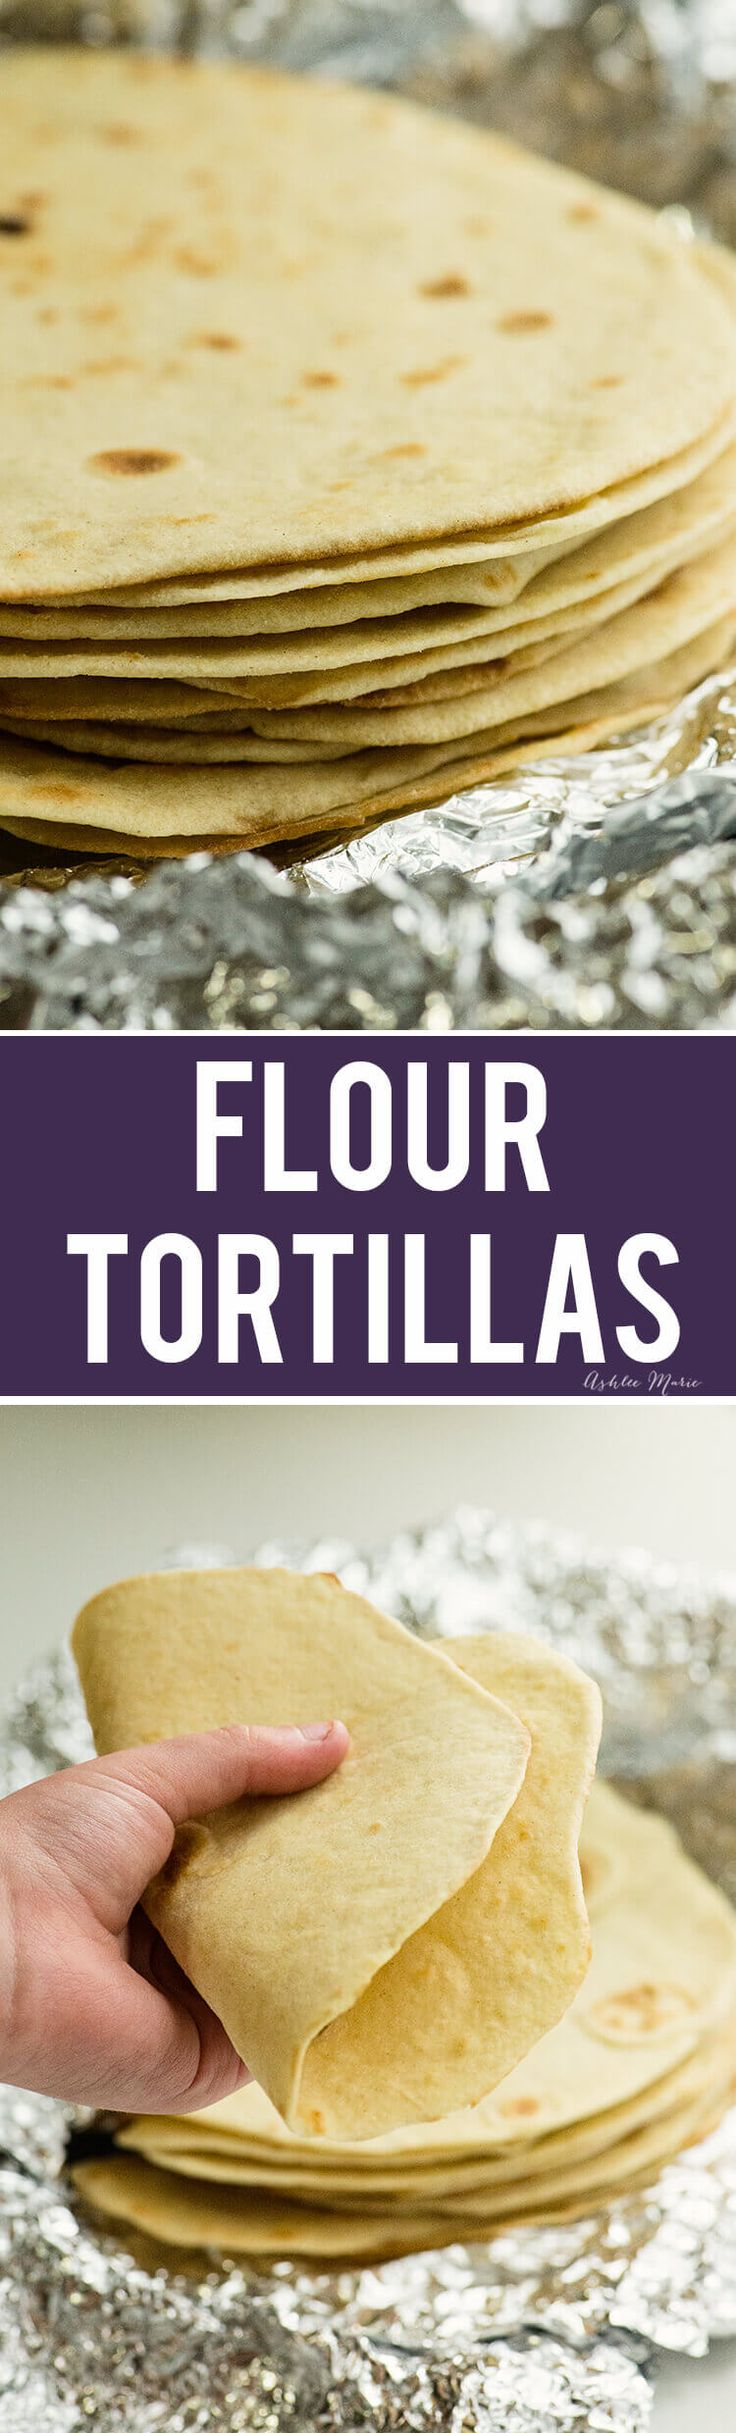 Homemade Flour Tortillas recipe and video via @ashleemariecakes